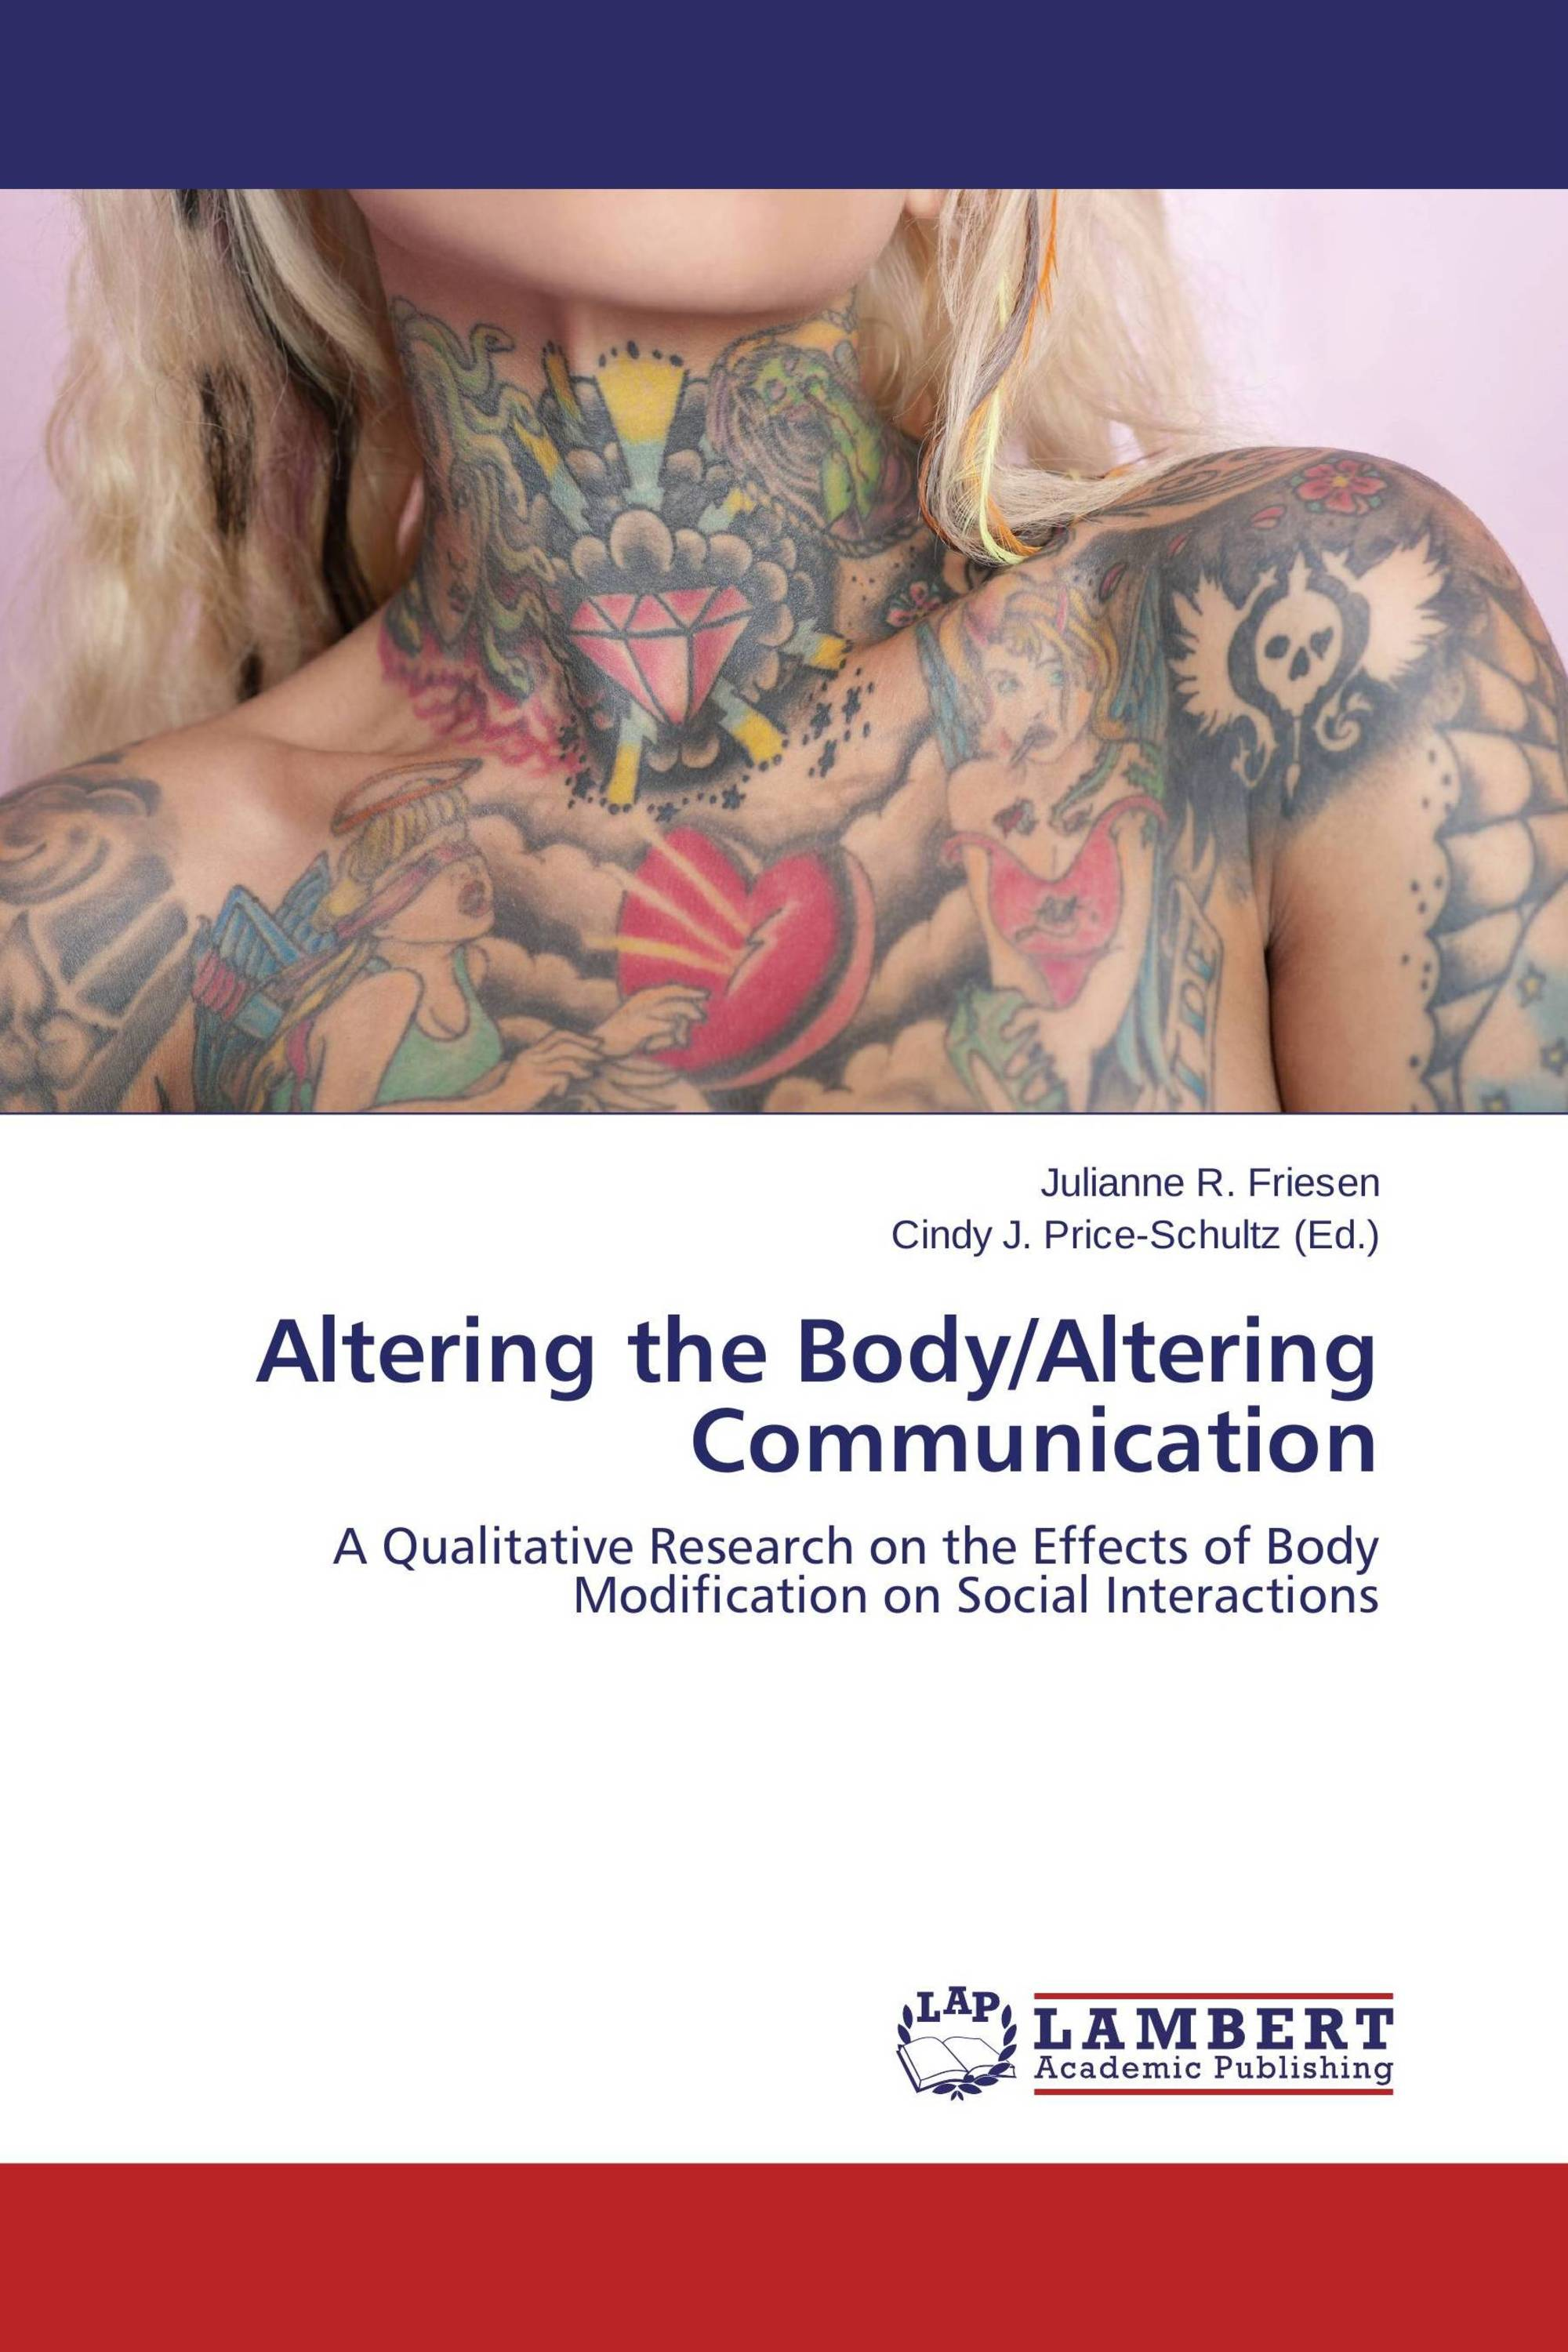 tattoos and its effects on society